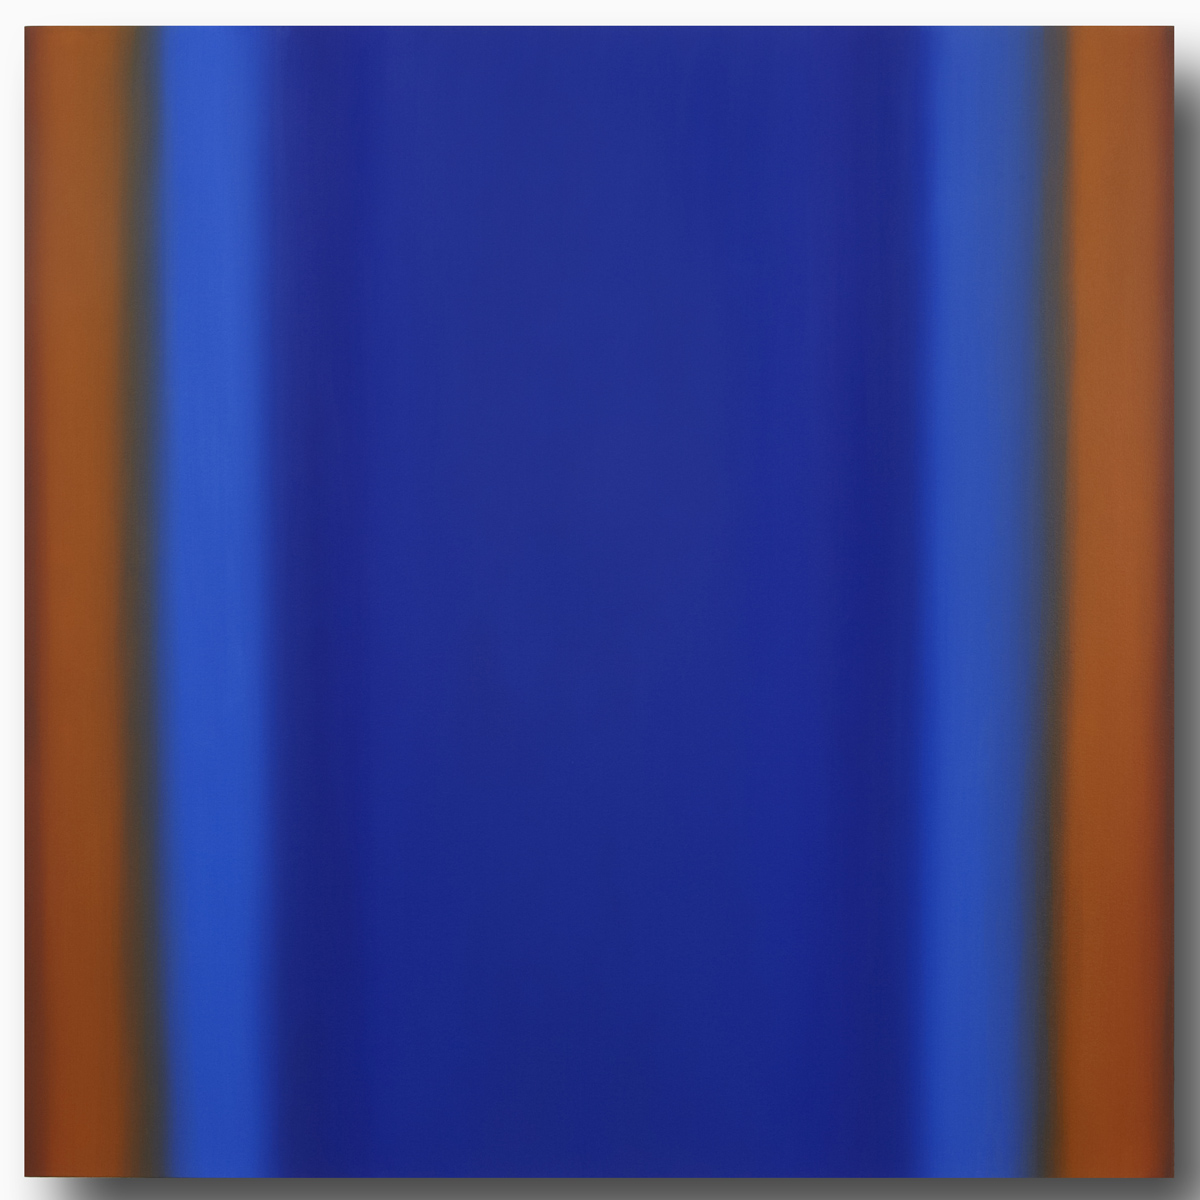 Mind's Eye Blue Orange 7-S6060 (Orange Deep), Sense Certainty Series, 2014, oil on canvas on custom beveled stretcher, 60 x 60 in. (153 x 153 cm.)